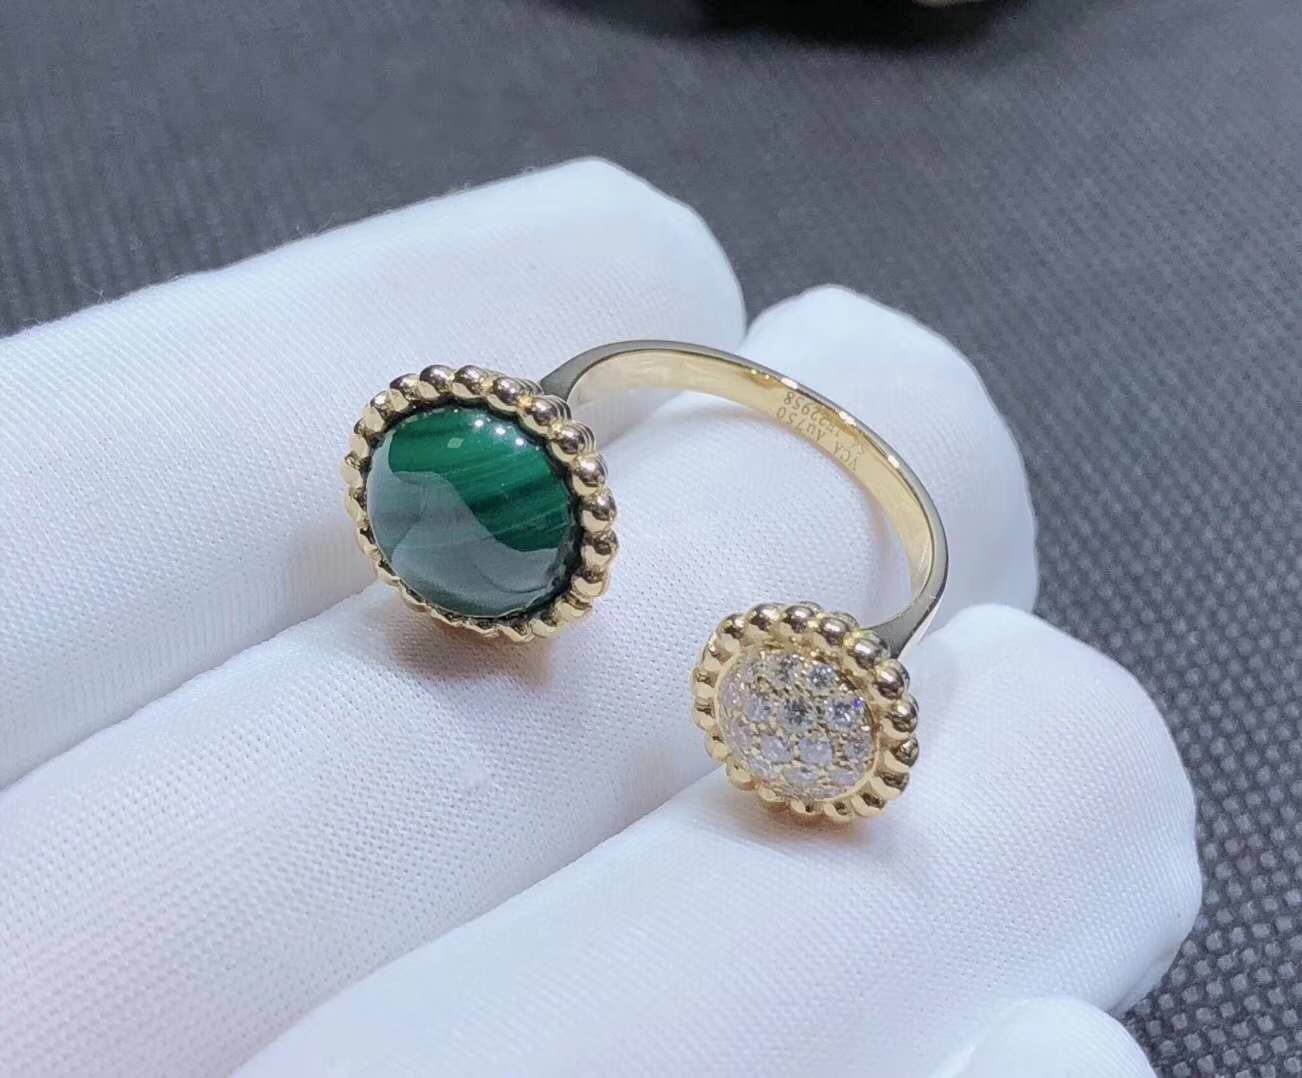 Inspired Van Cleef & Arpels 18K Gold Perlee Couleurs Malachite & Diamond Between the Finger Ring